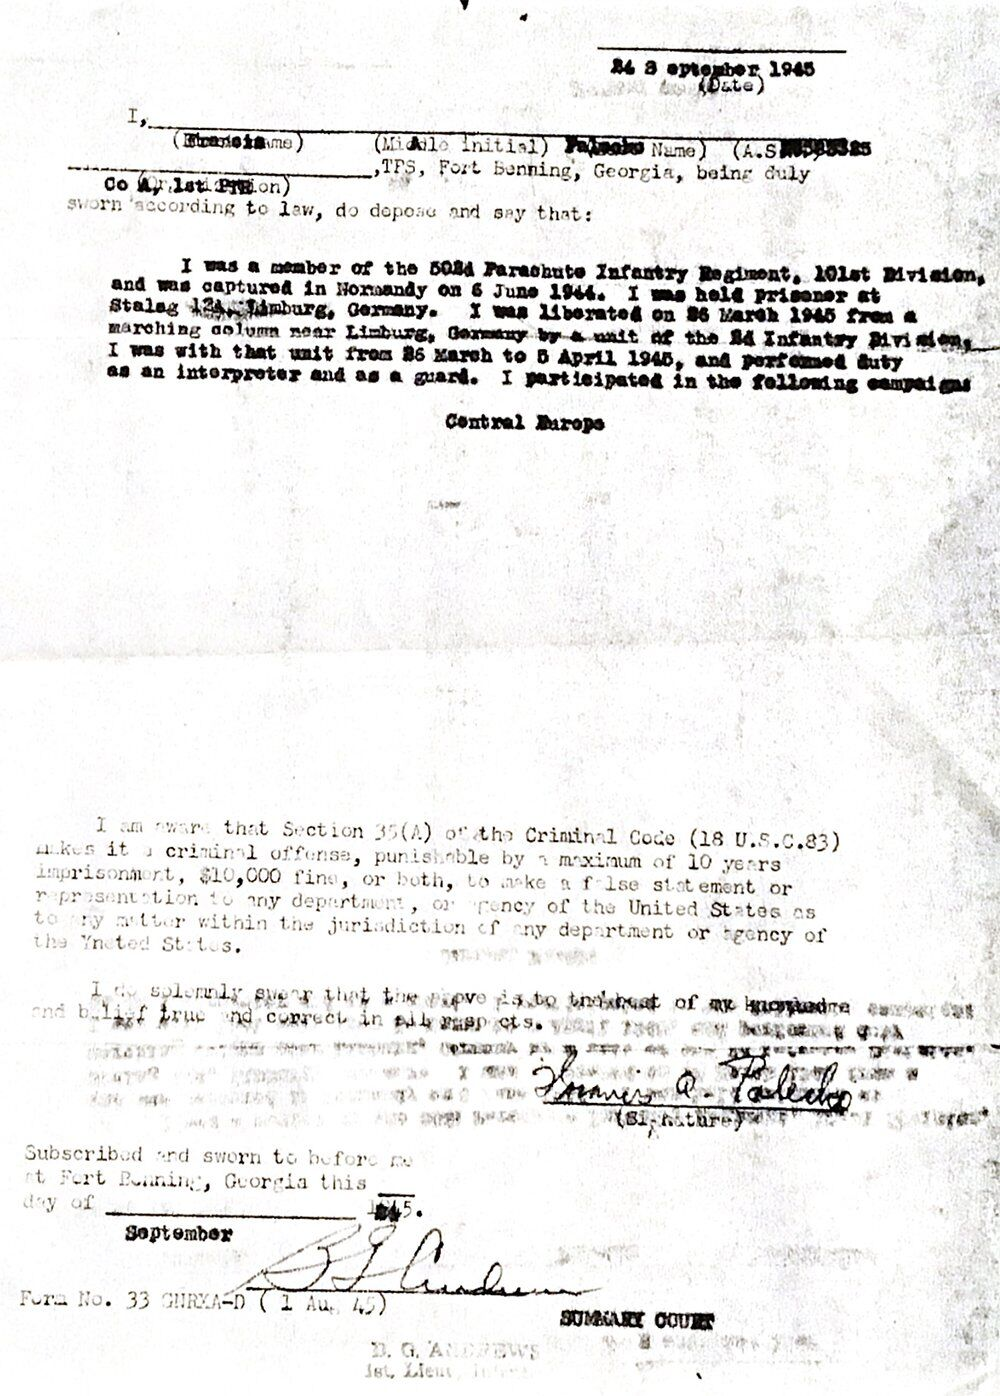 Frank Palecko - US Army Discharge Papers - 1945